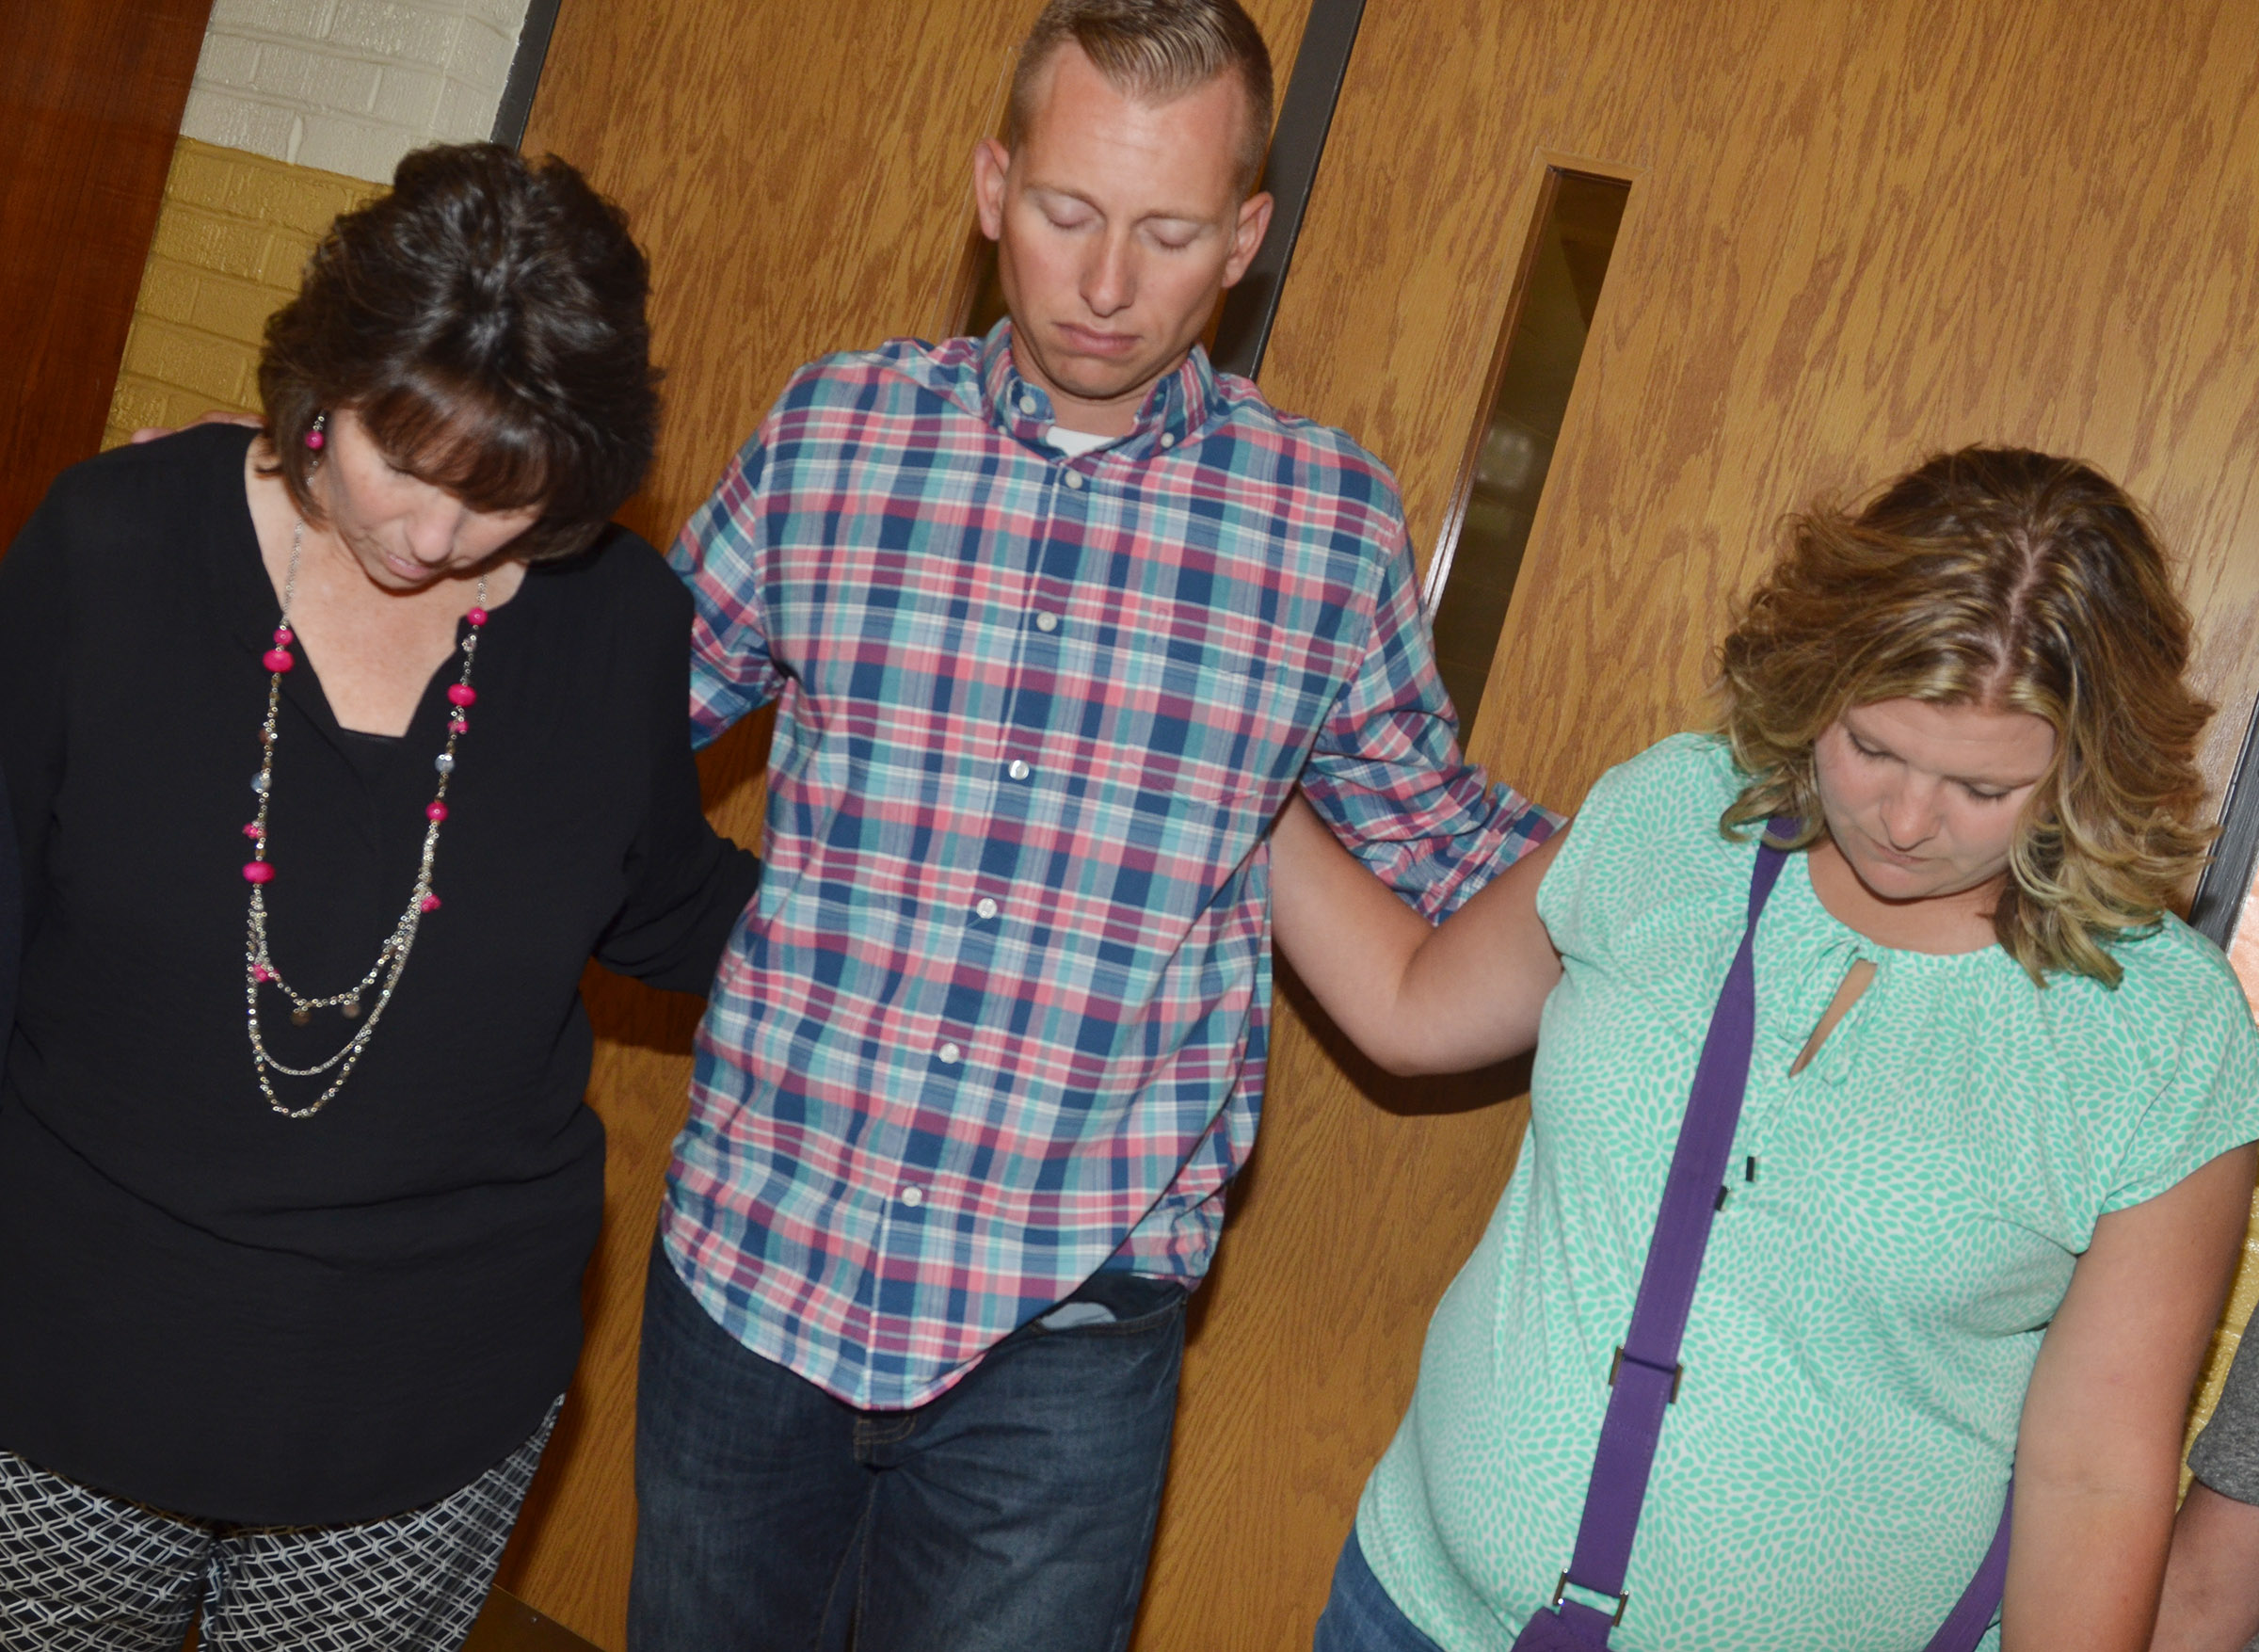 From left, CHS teacher Deanna Campbell, CMS Principal Zach Lewis and CES teacher Tammy Hash pray together.